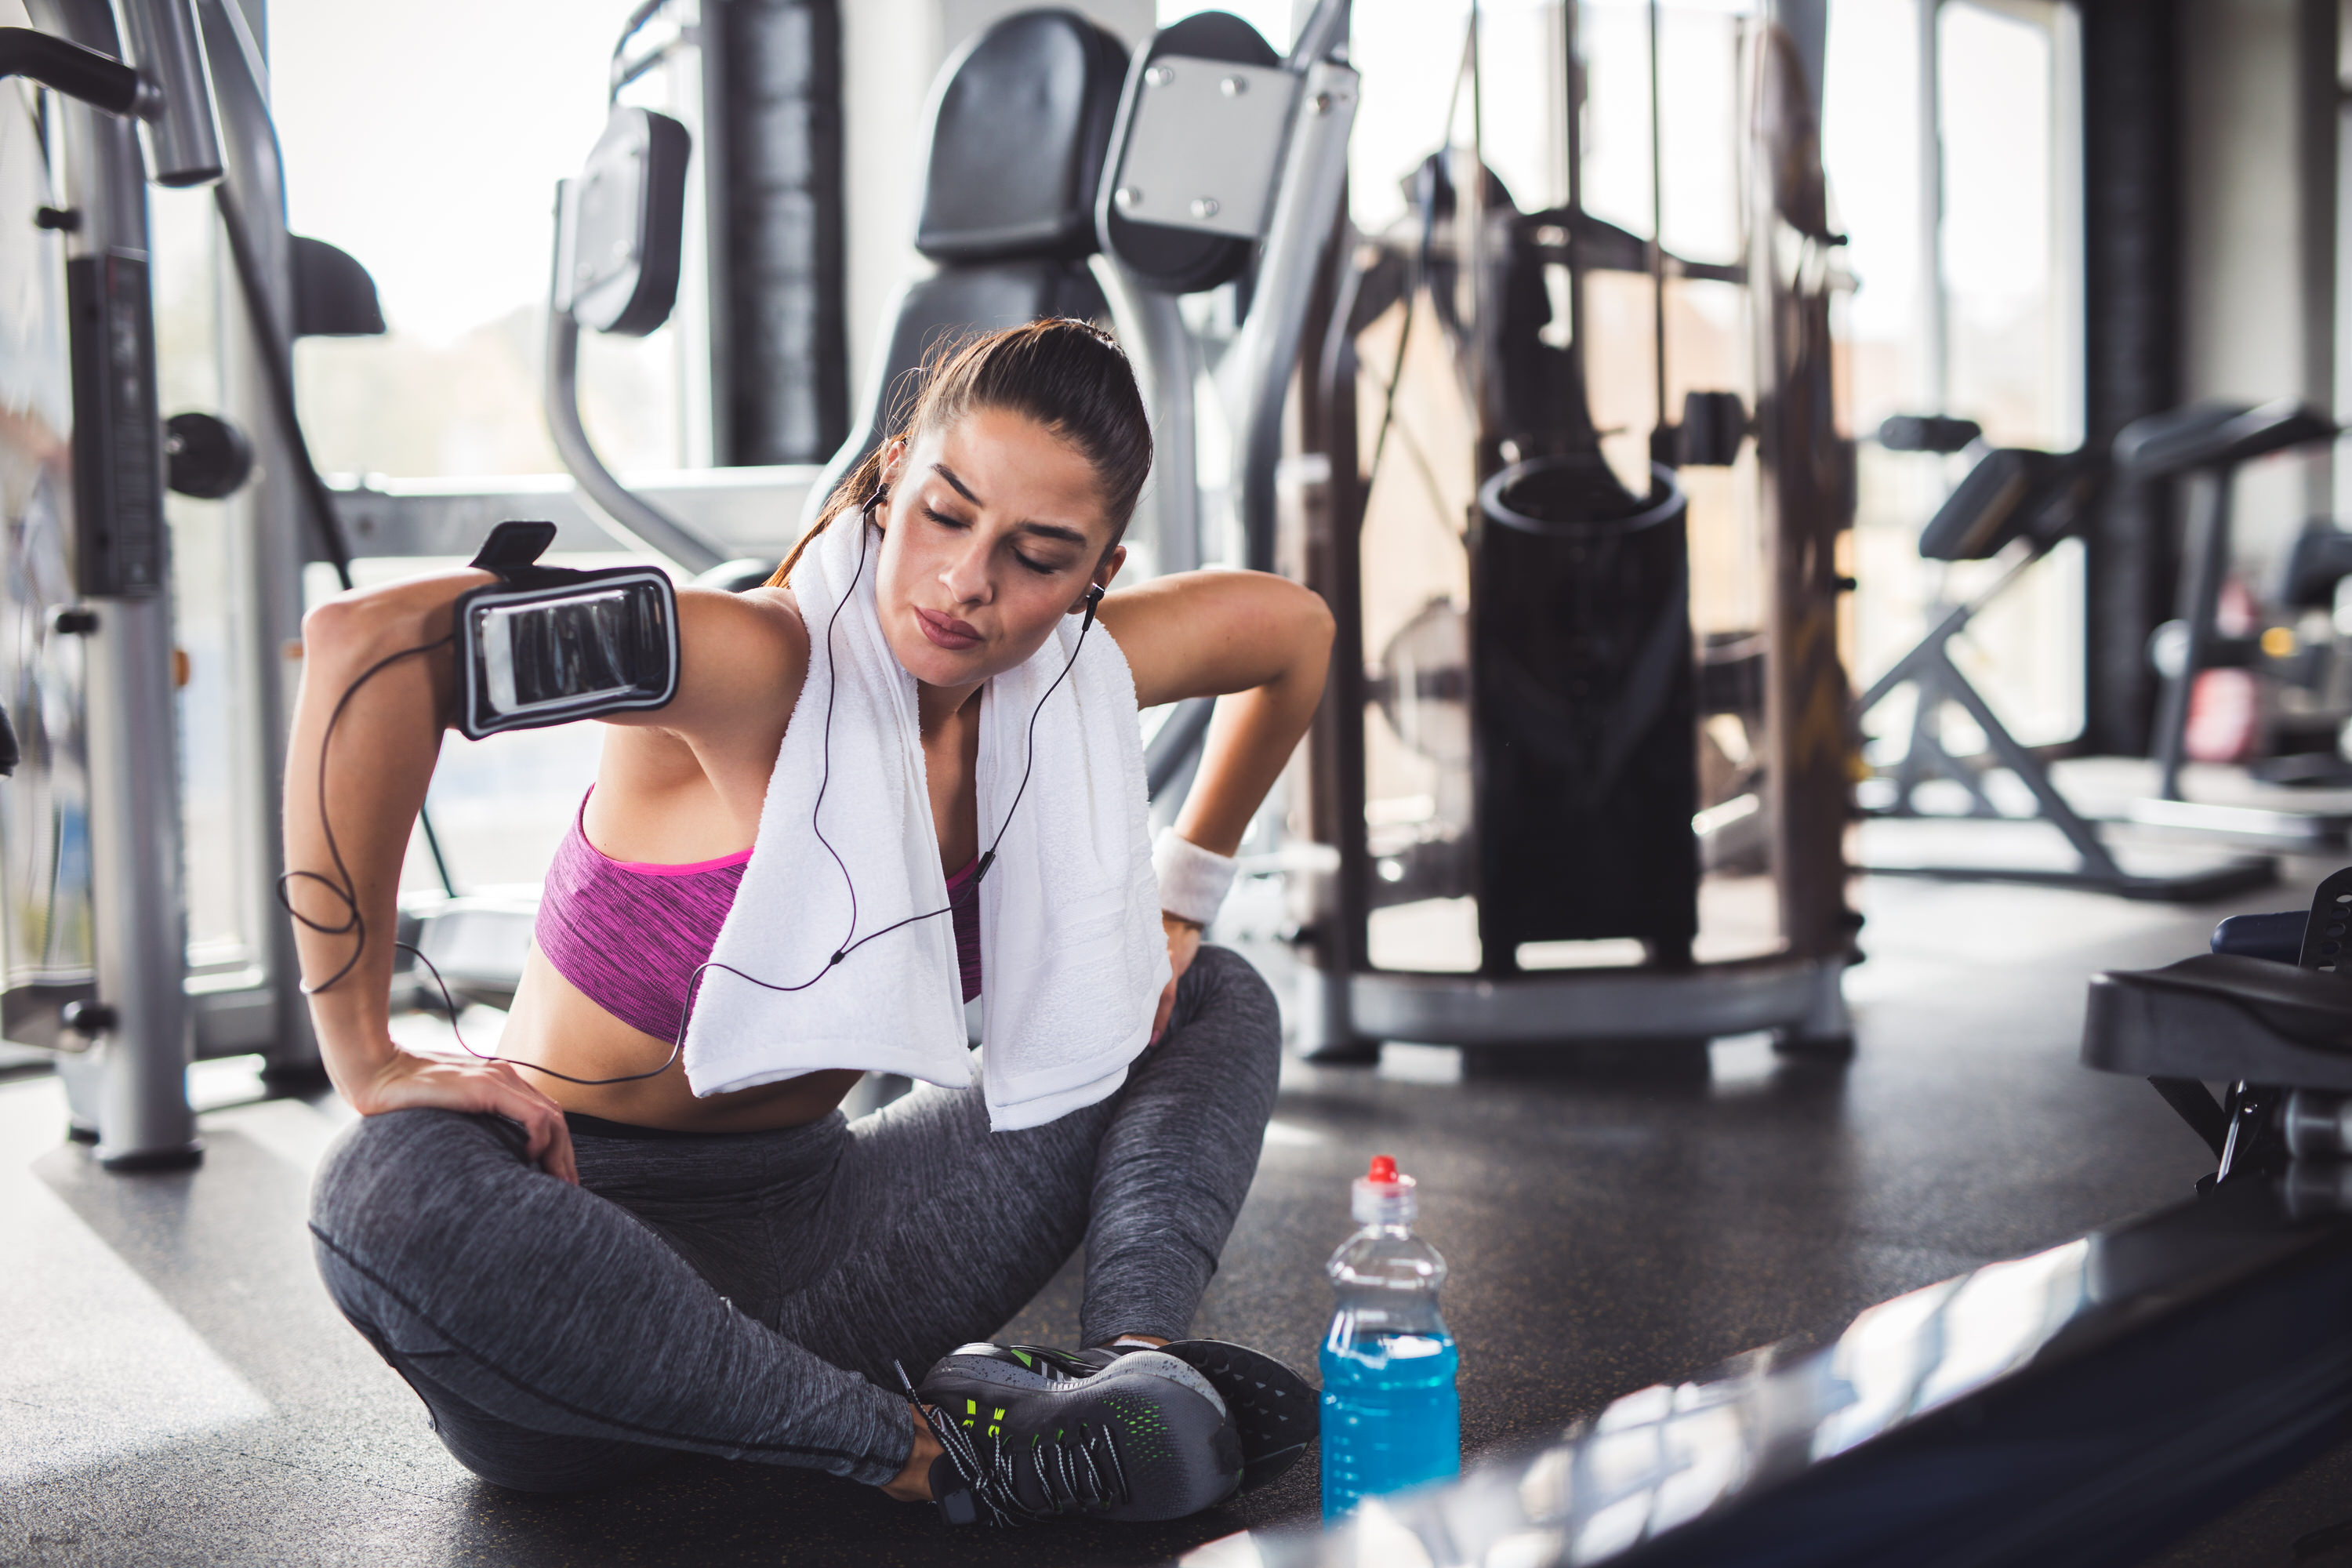 Image of a young sporty woman warming up before her workout at the gym.